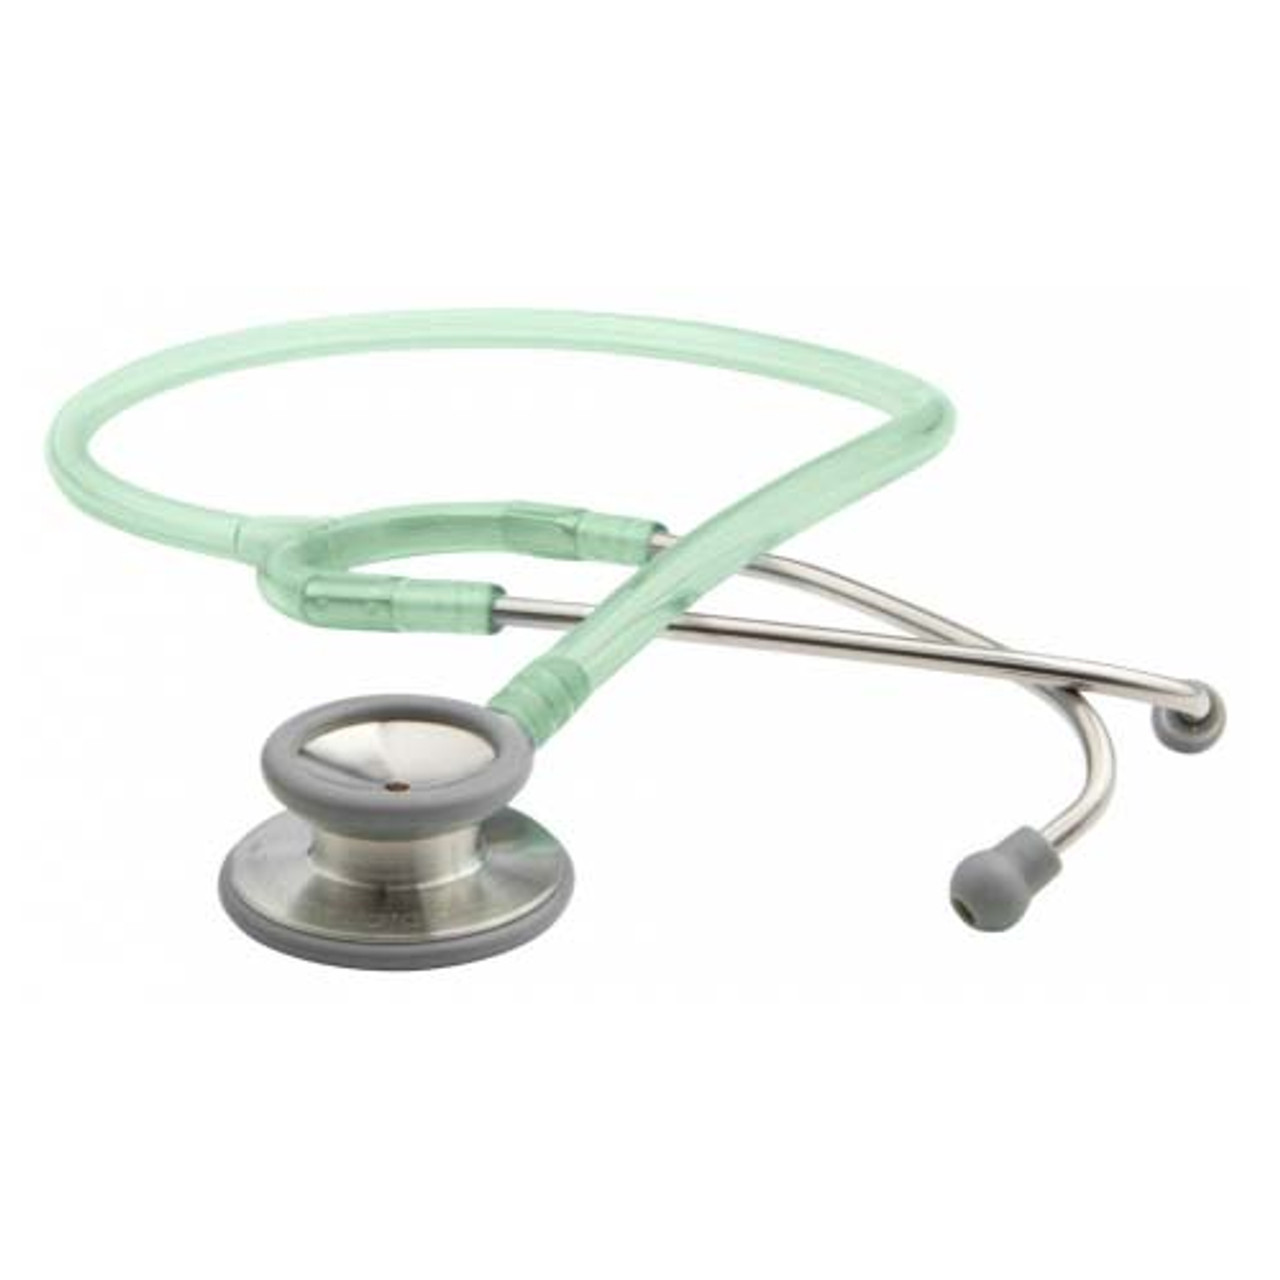 ADC 603 General Diagnostic Stethoscope, Frosted Seafoam, 603FS